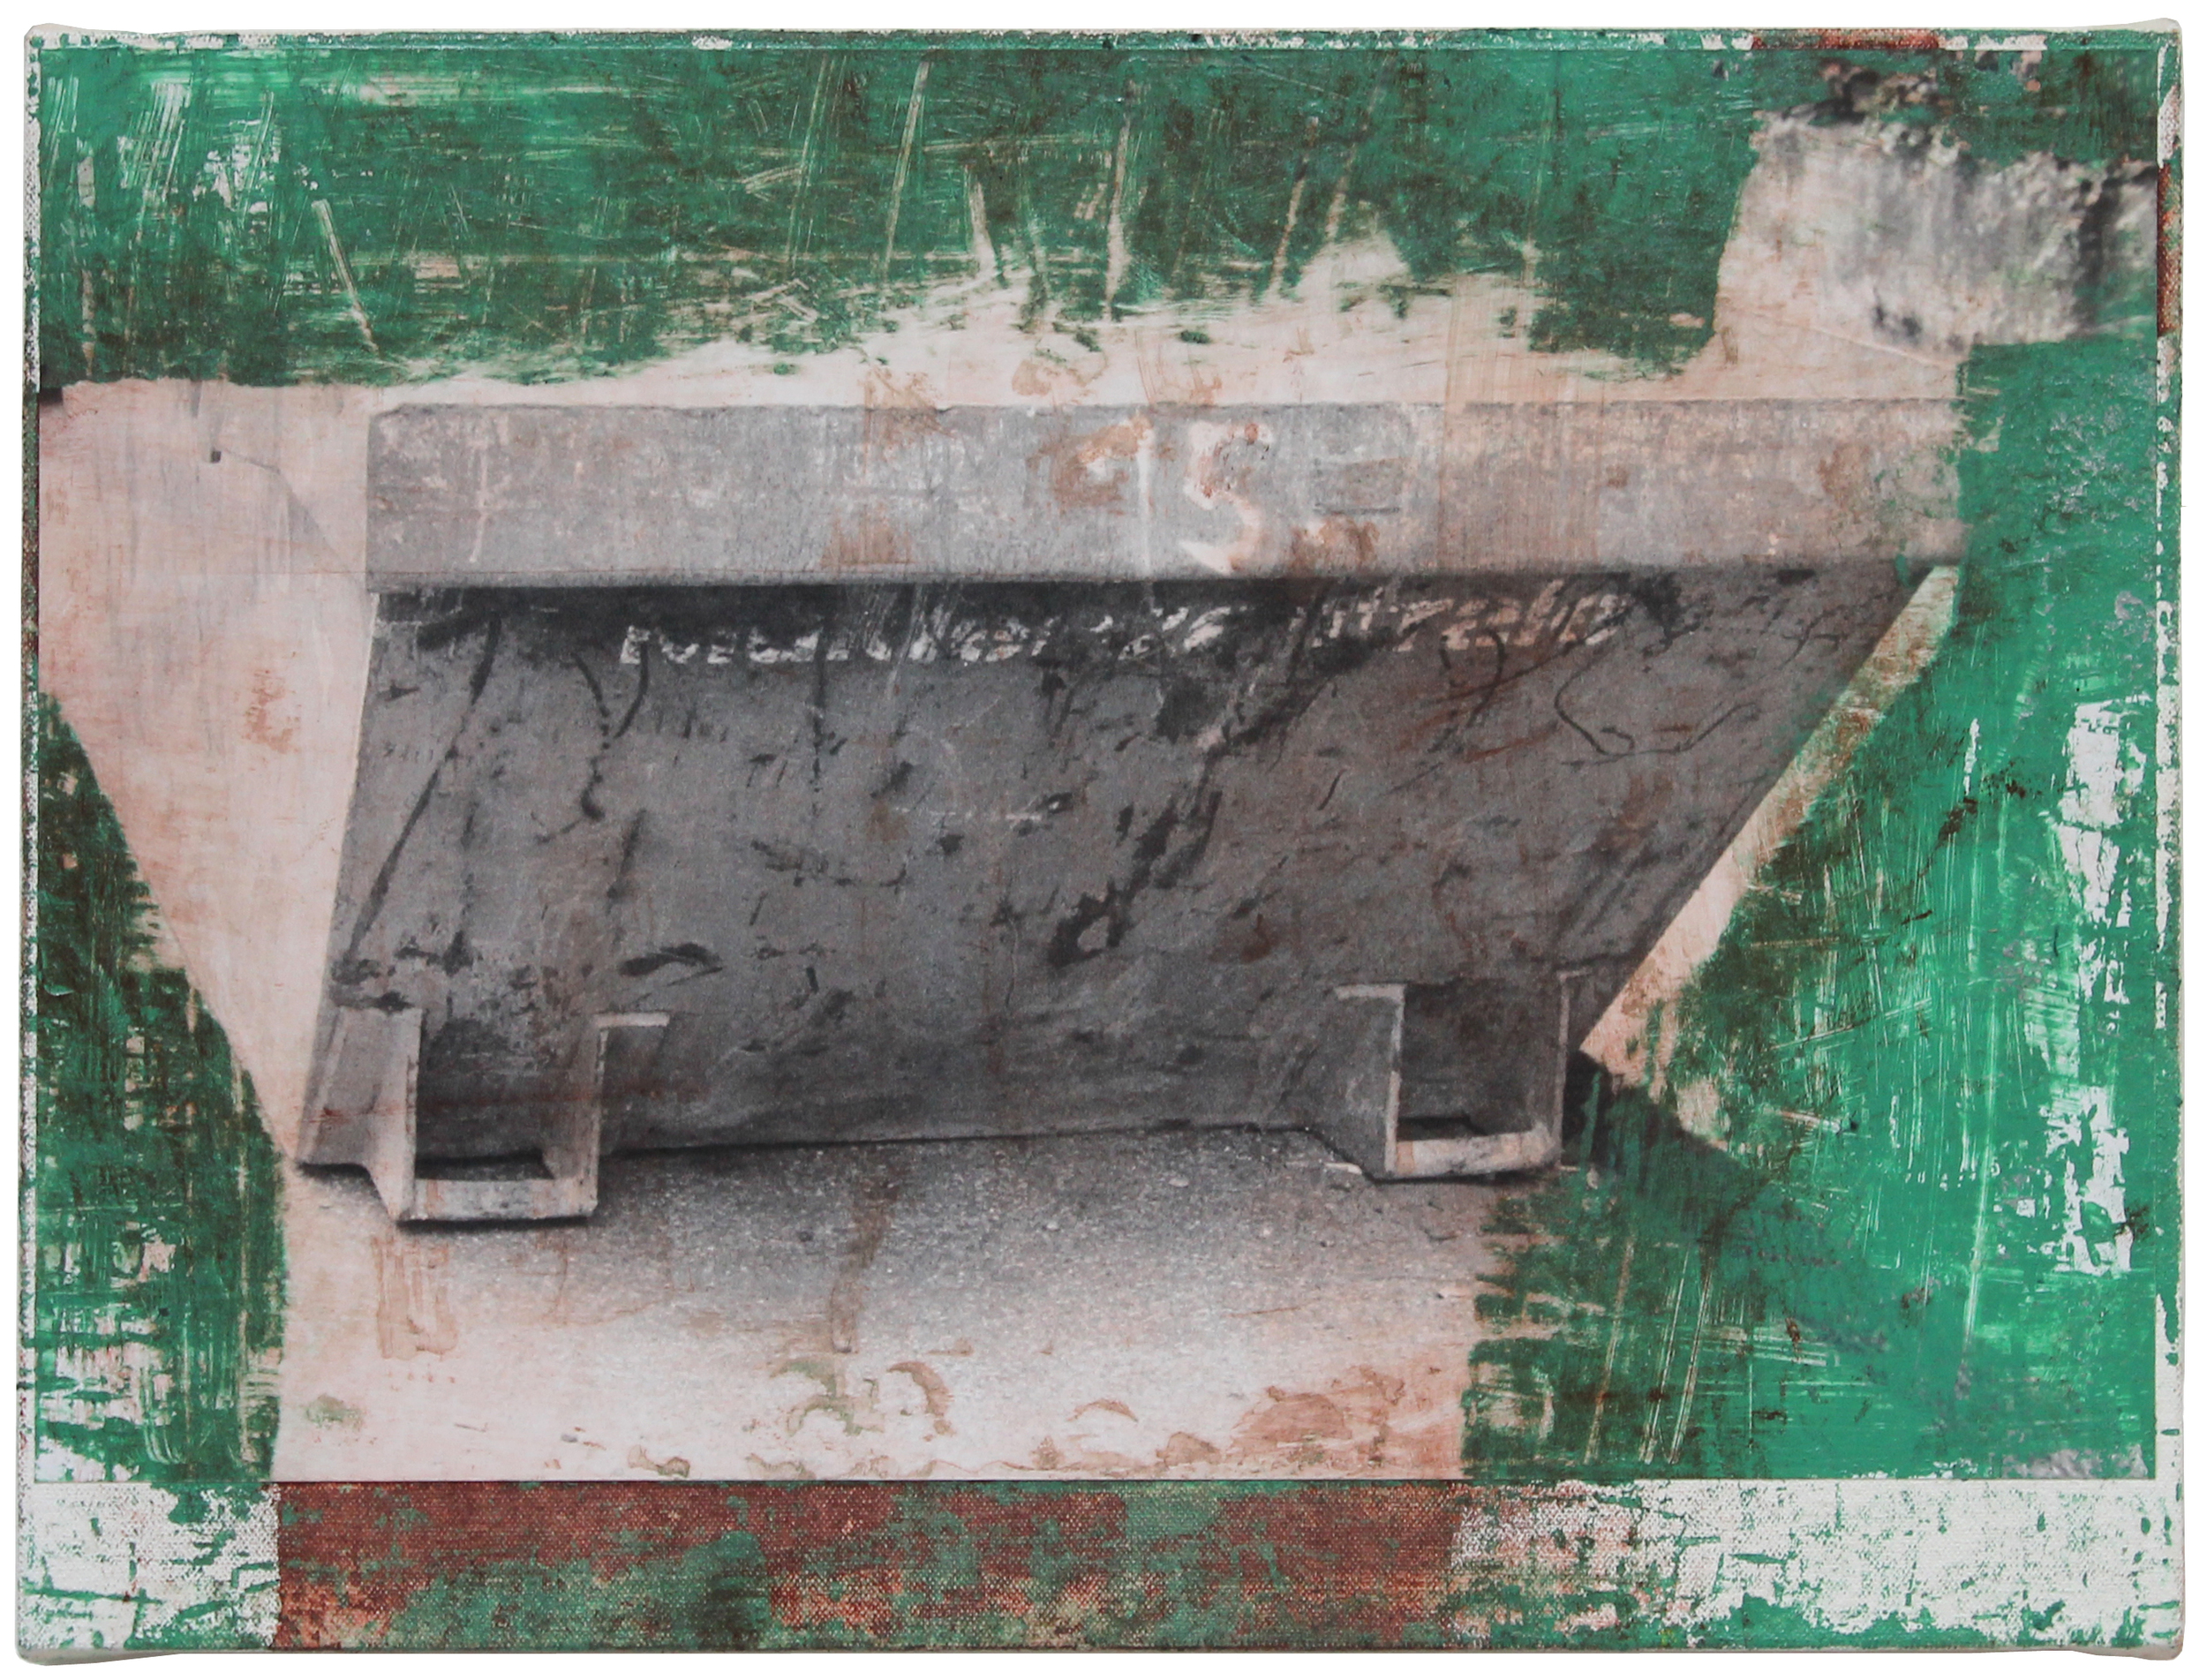 Photo-Painting #112 2015 12 x 16 x 1 inches